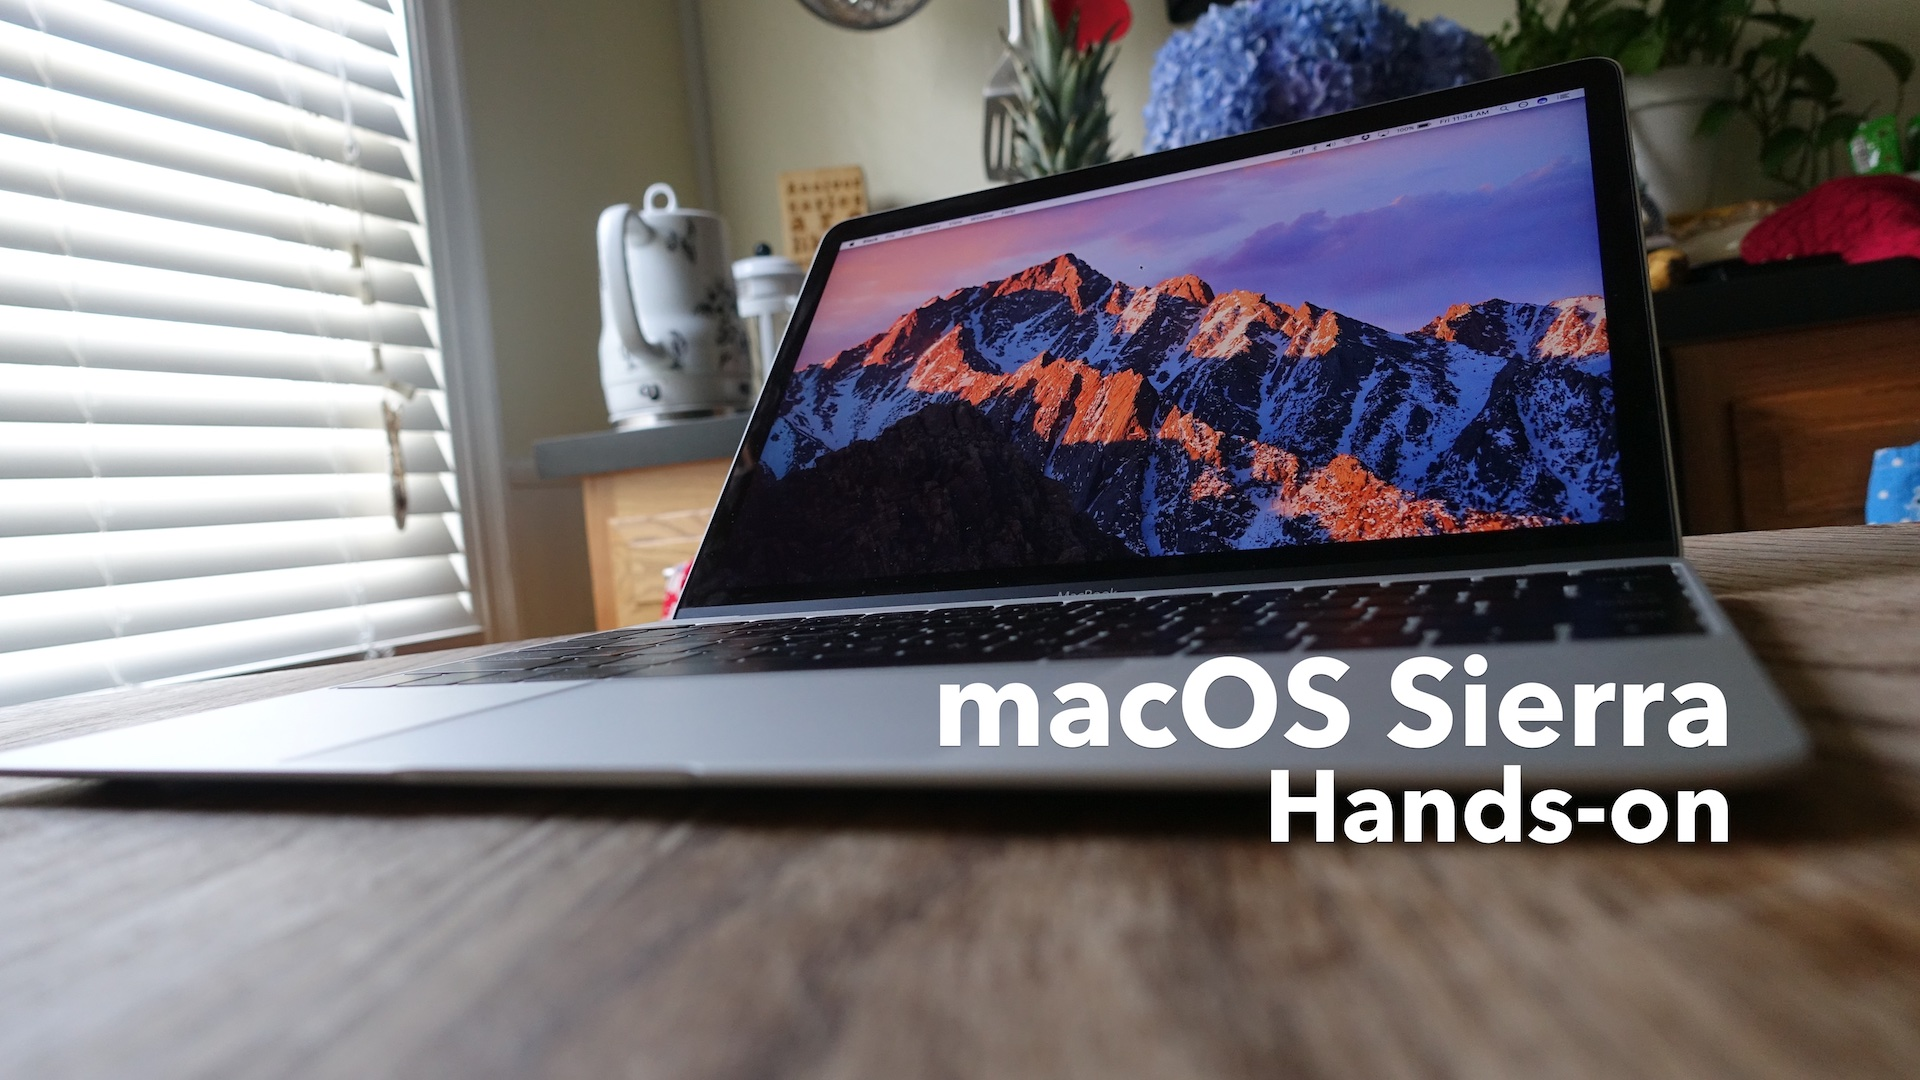 macOS Sierra hands-on